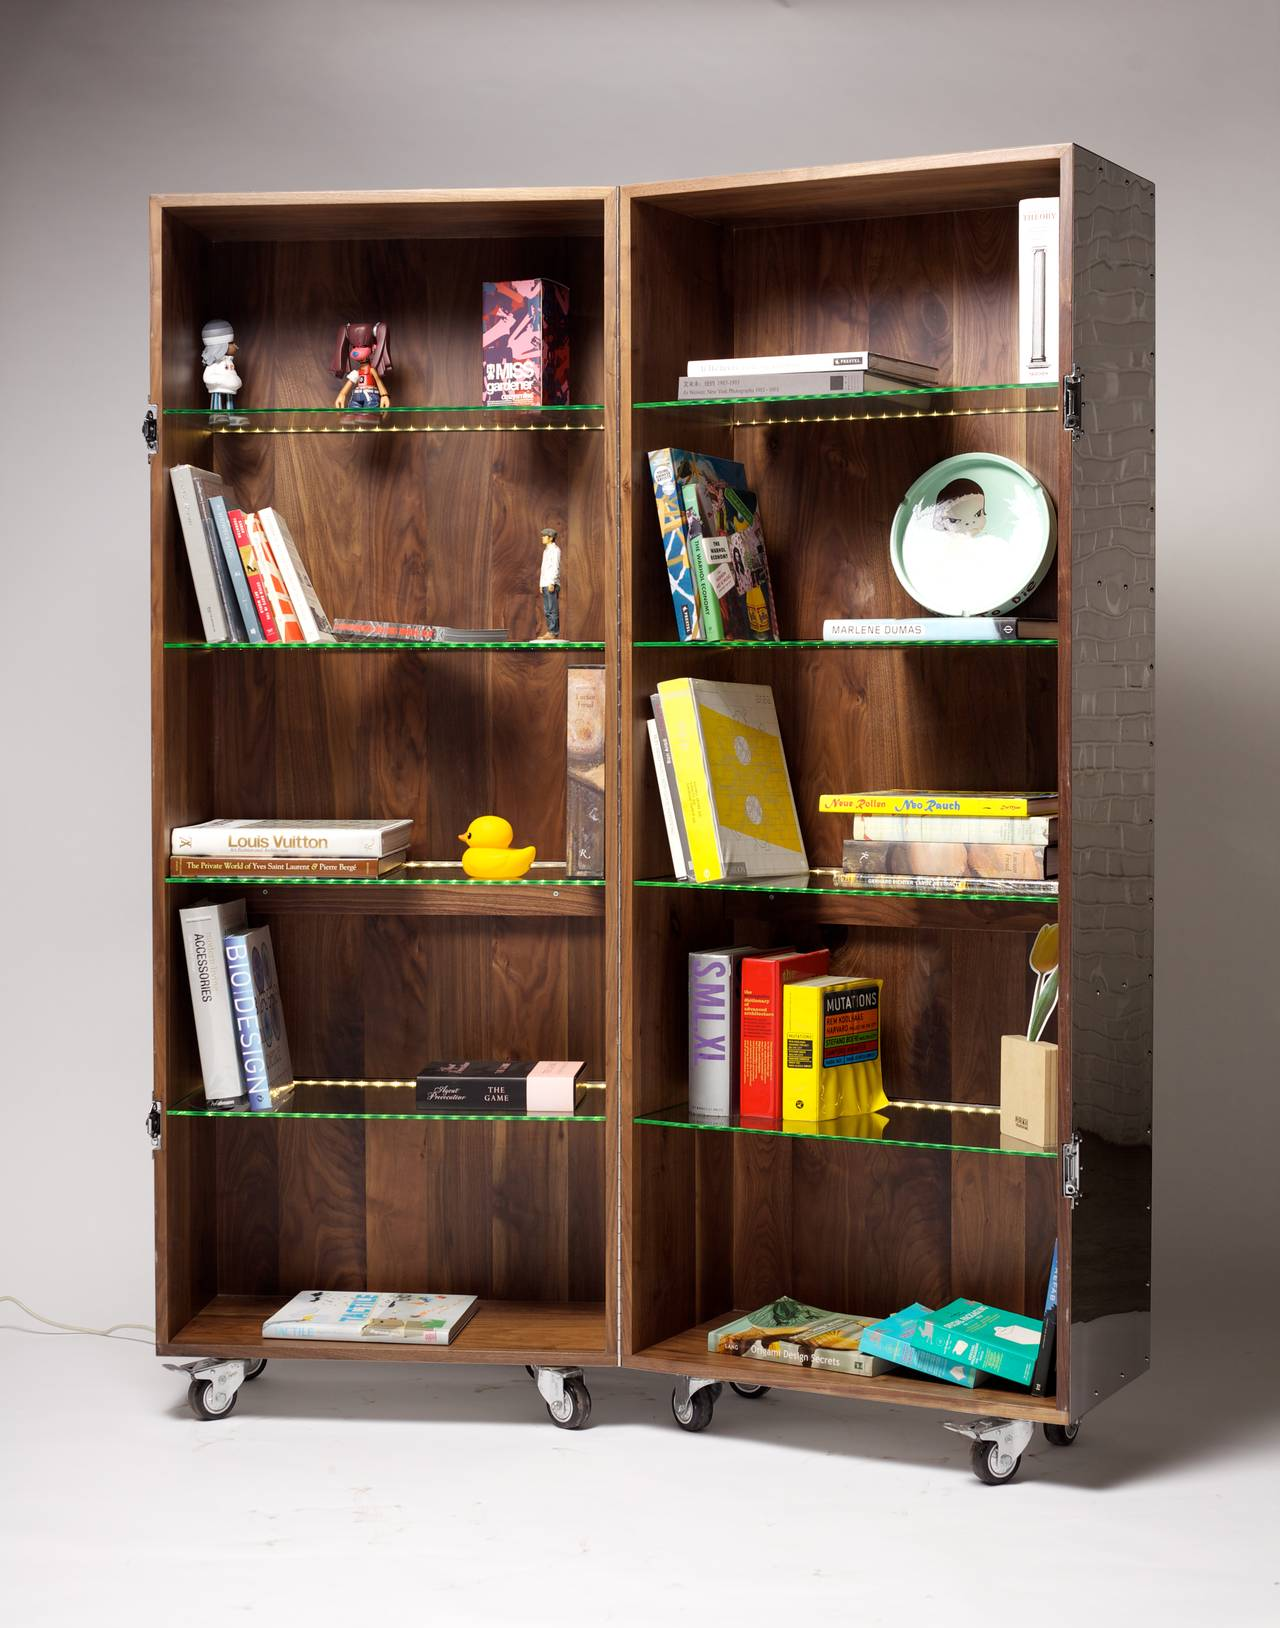 Expandable Mobile Bookshelf in Mirror Finish Stainless Steel by Li Naihan 3 - Expandable Mobile Bookshelf In Mirror Finish Stainless Steel By Li